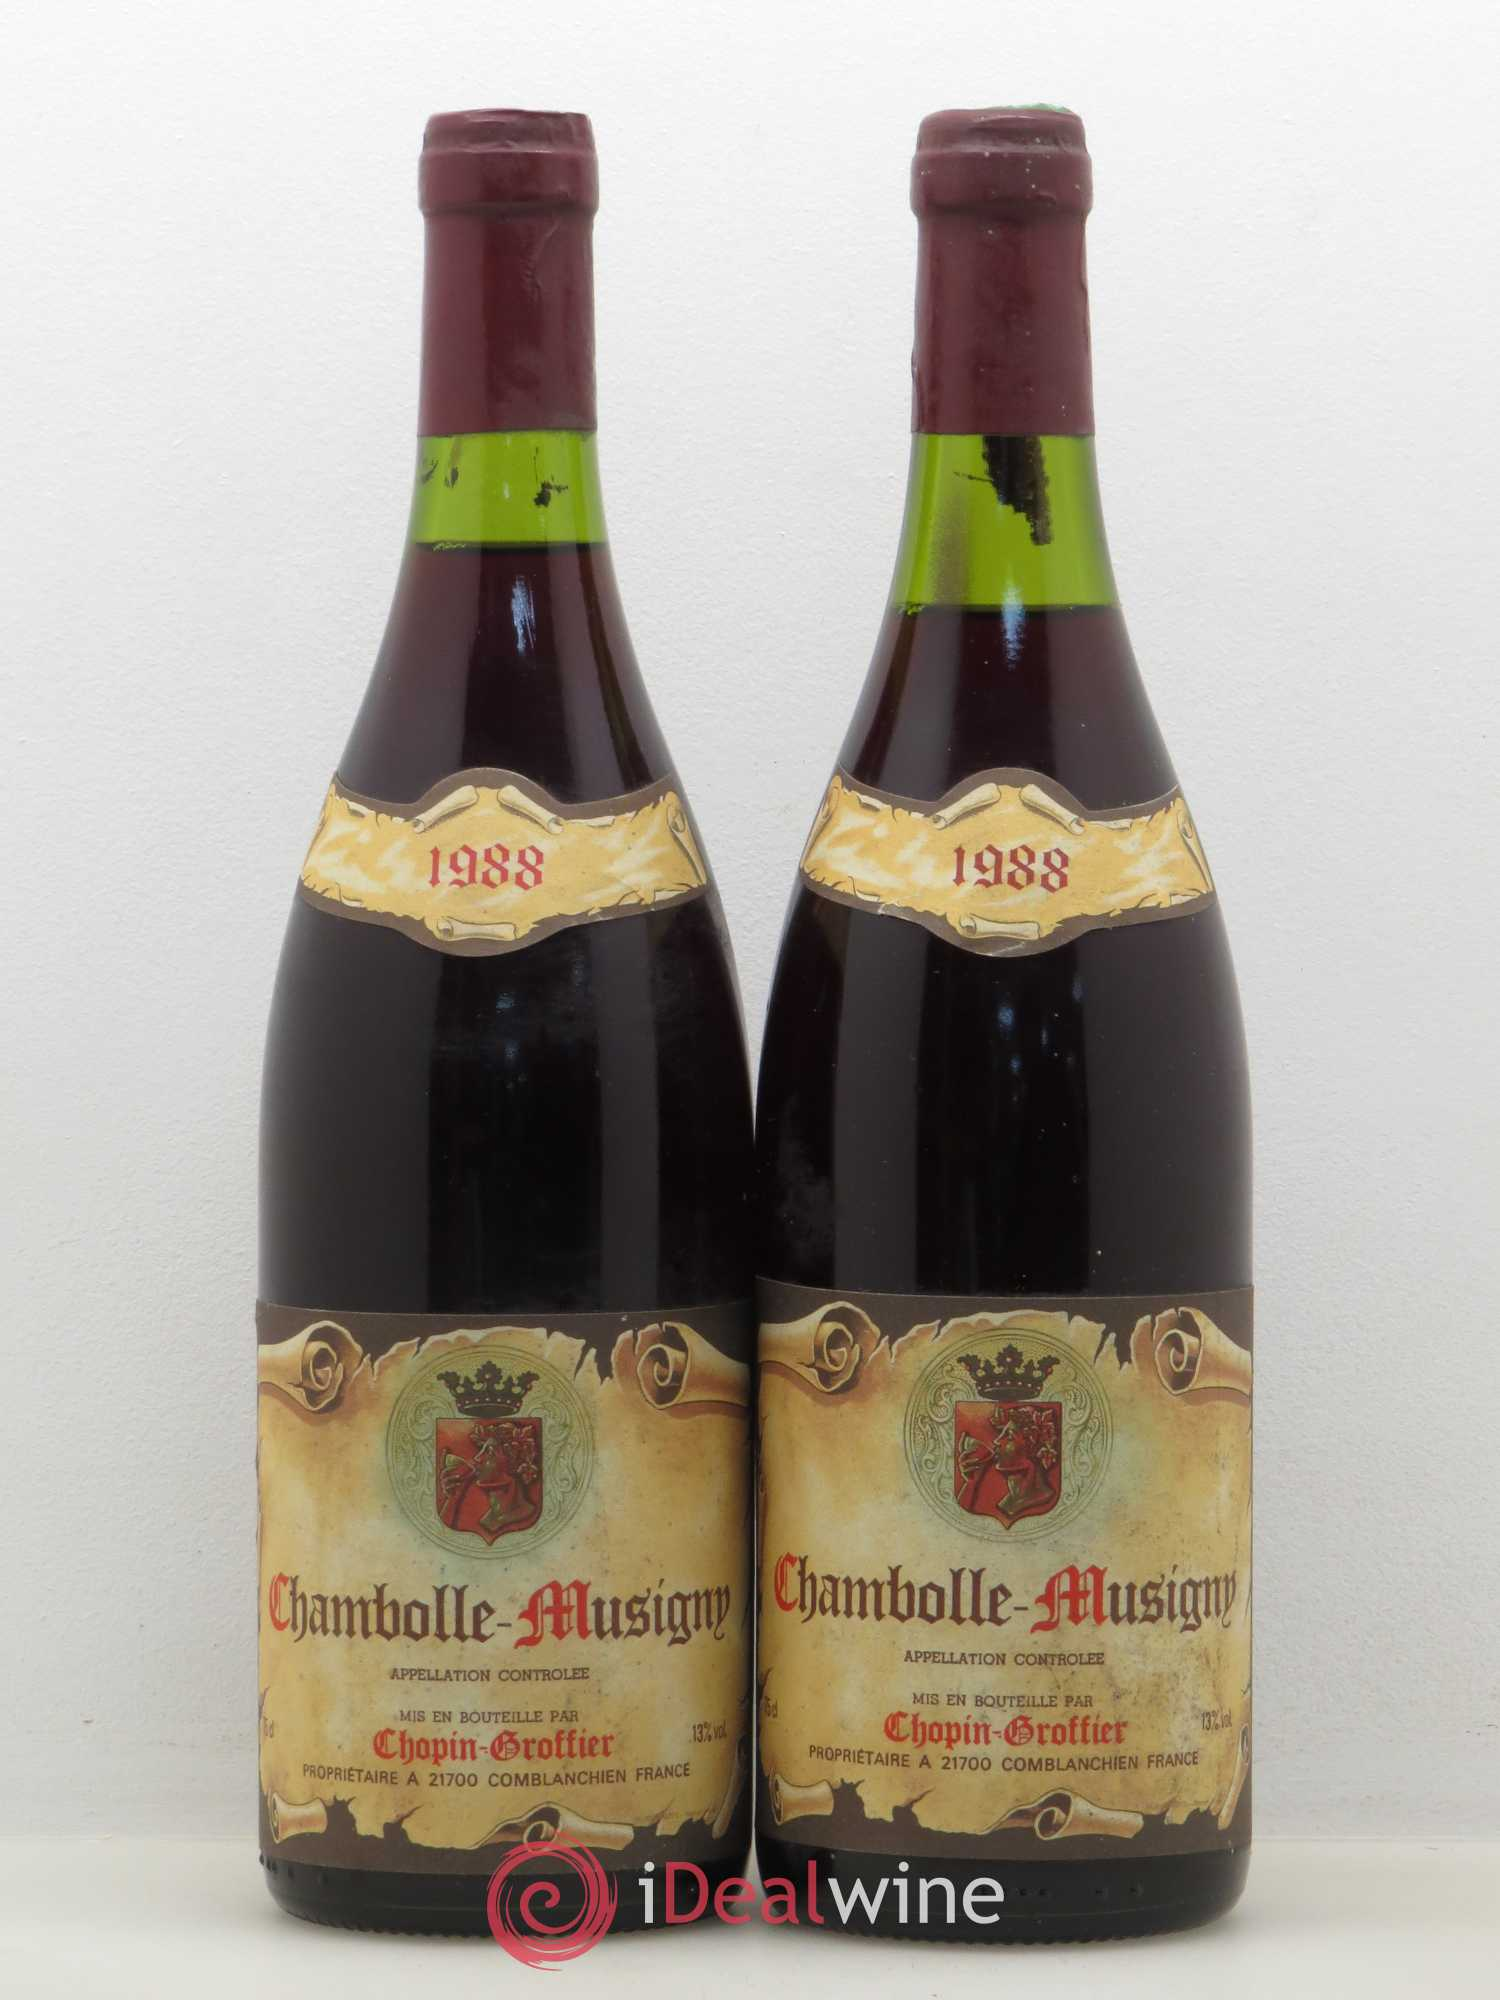 Chambolle-Musigny Chopin Groffier 1988 - Lot of 2 Bottles